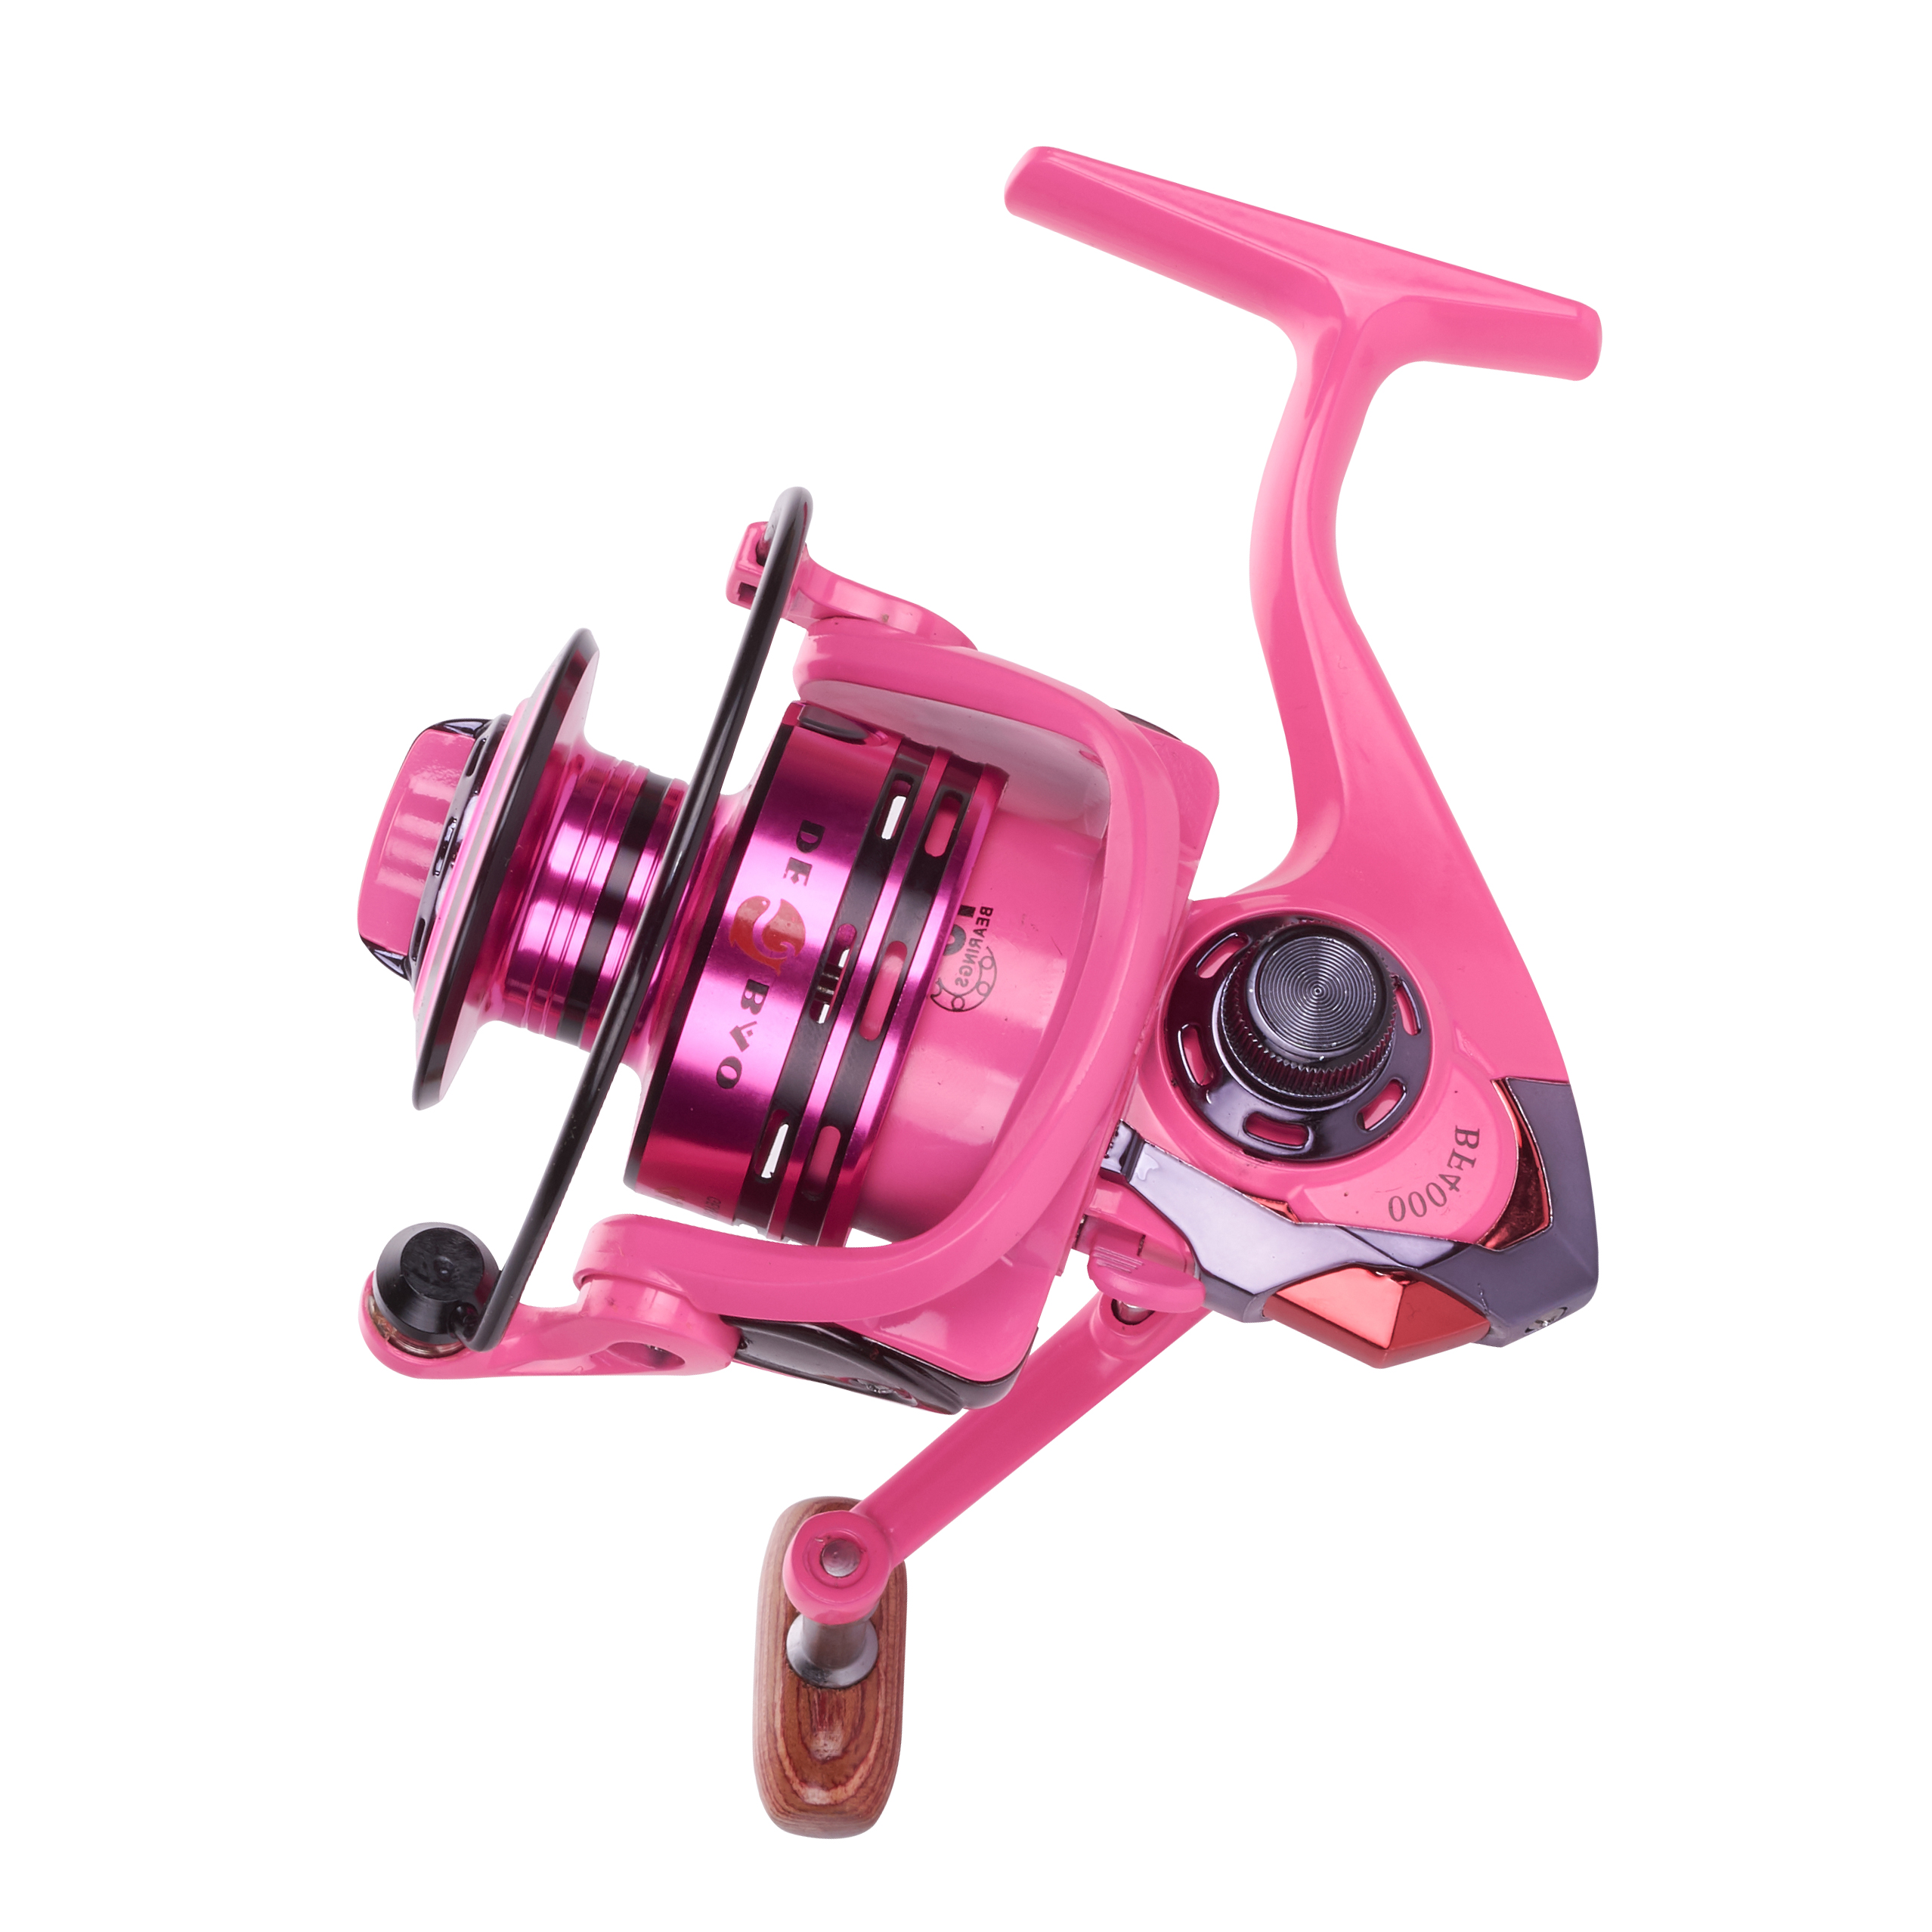 Hiumi Metal Fishing-Gear Spinning Pink/green 3000 4000 2000 Freshwater 5000 for 10--1 title=